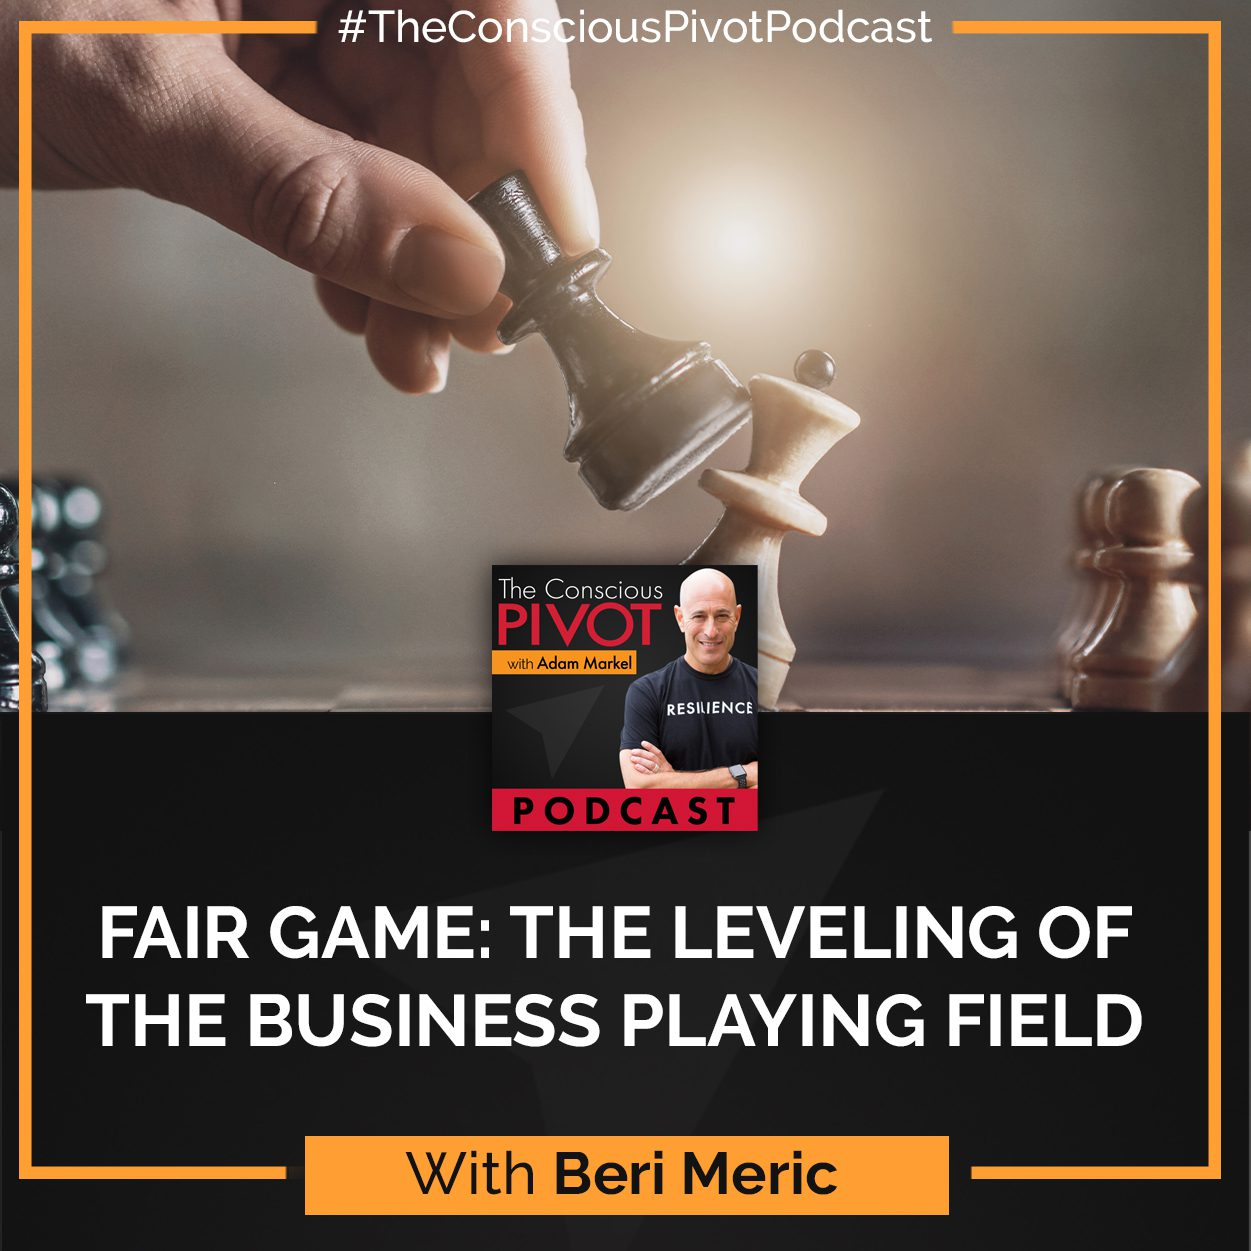 Fair Game: The Leveling Of The Business Playing Field With Beri Meric